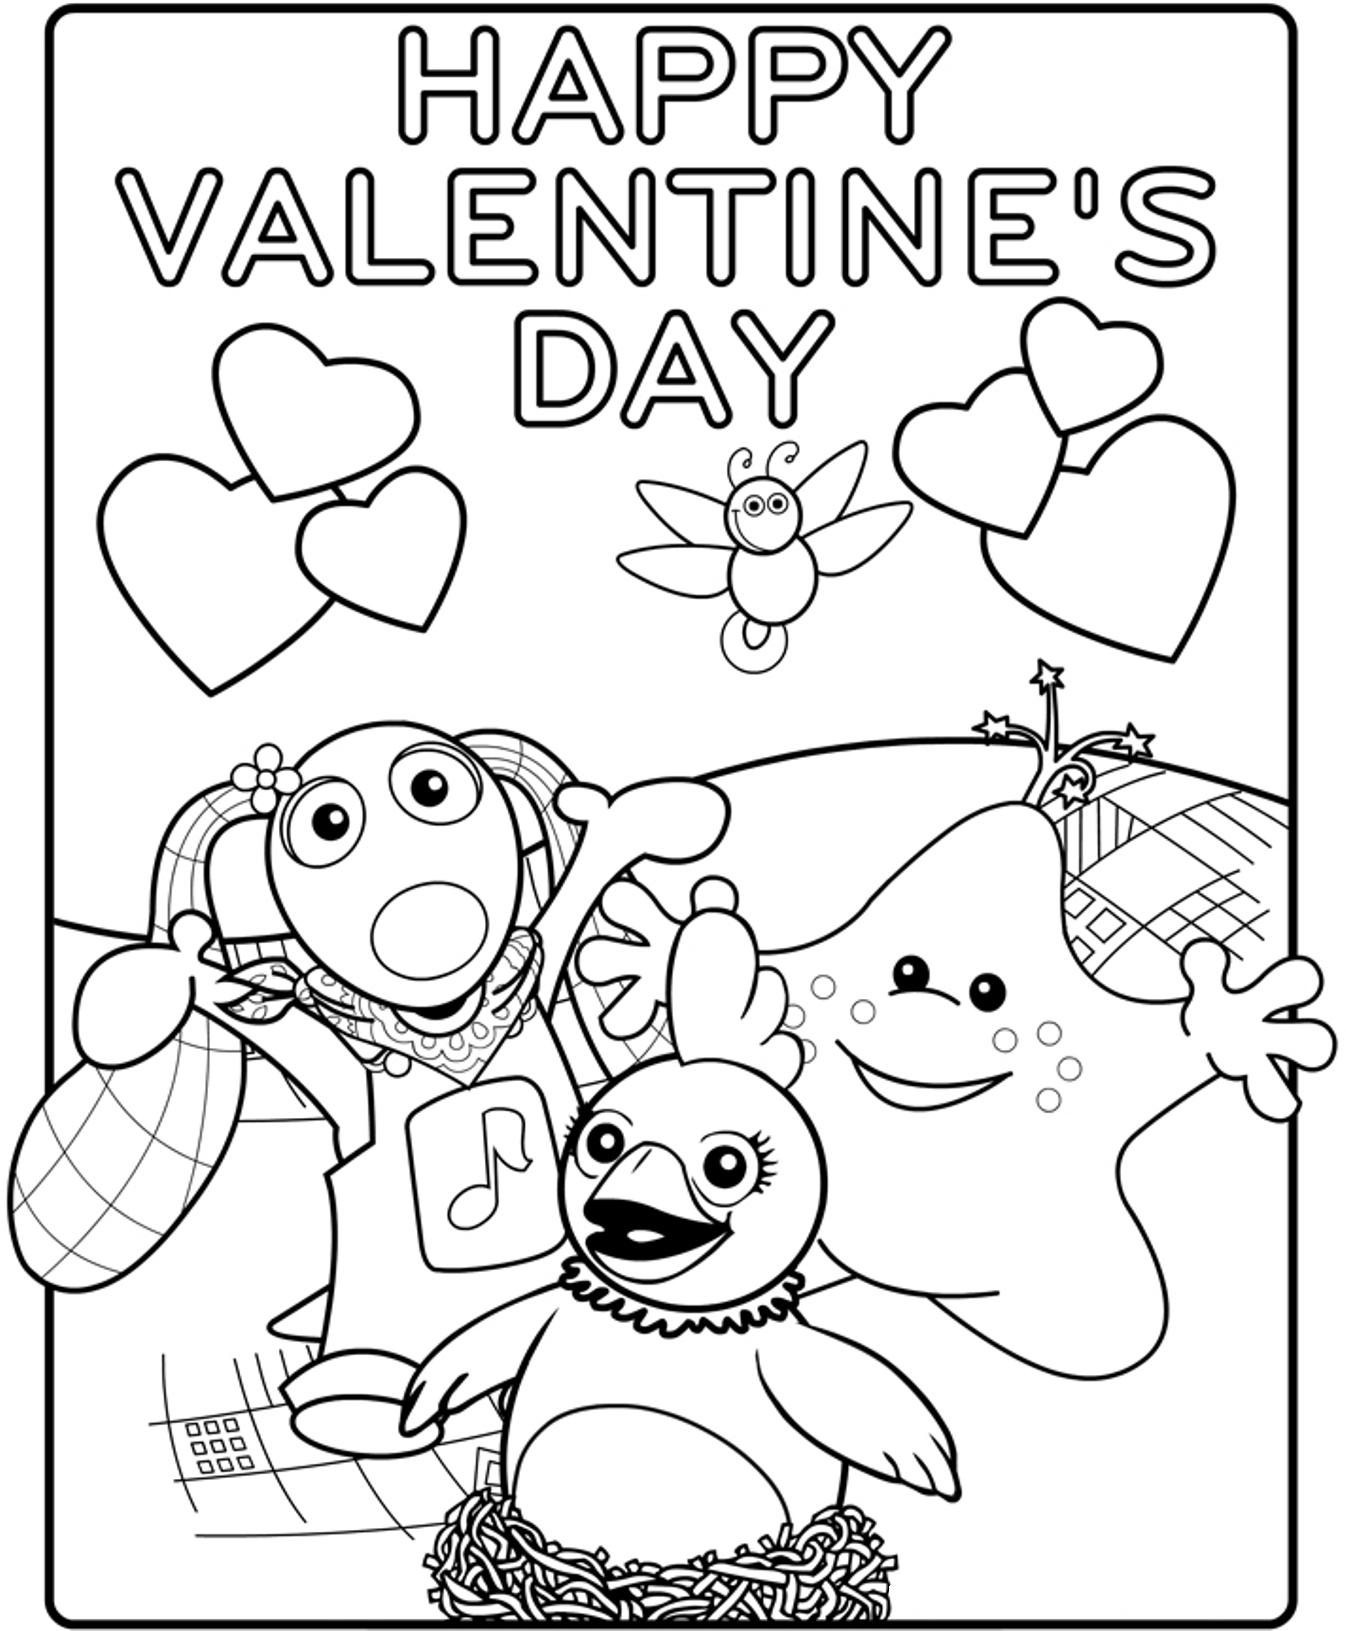 valentines coloring pages printable valentine coloring pages pdf at getcoloringscom free pages valentines coloring printable